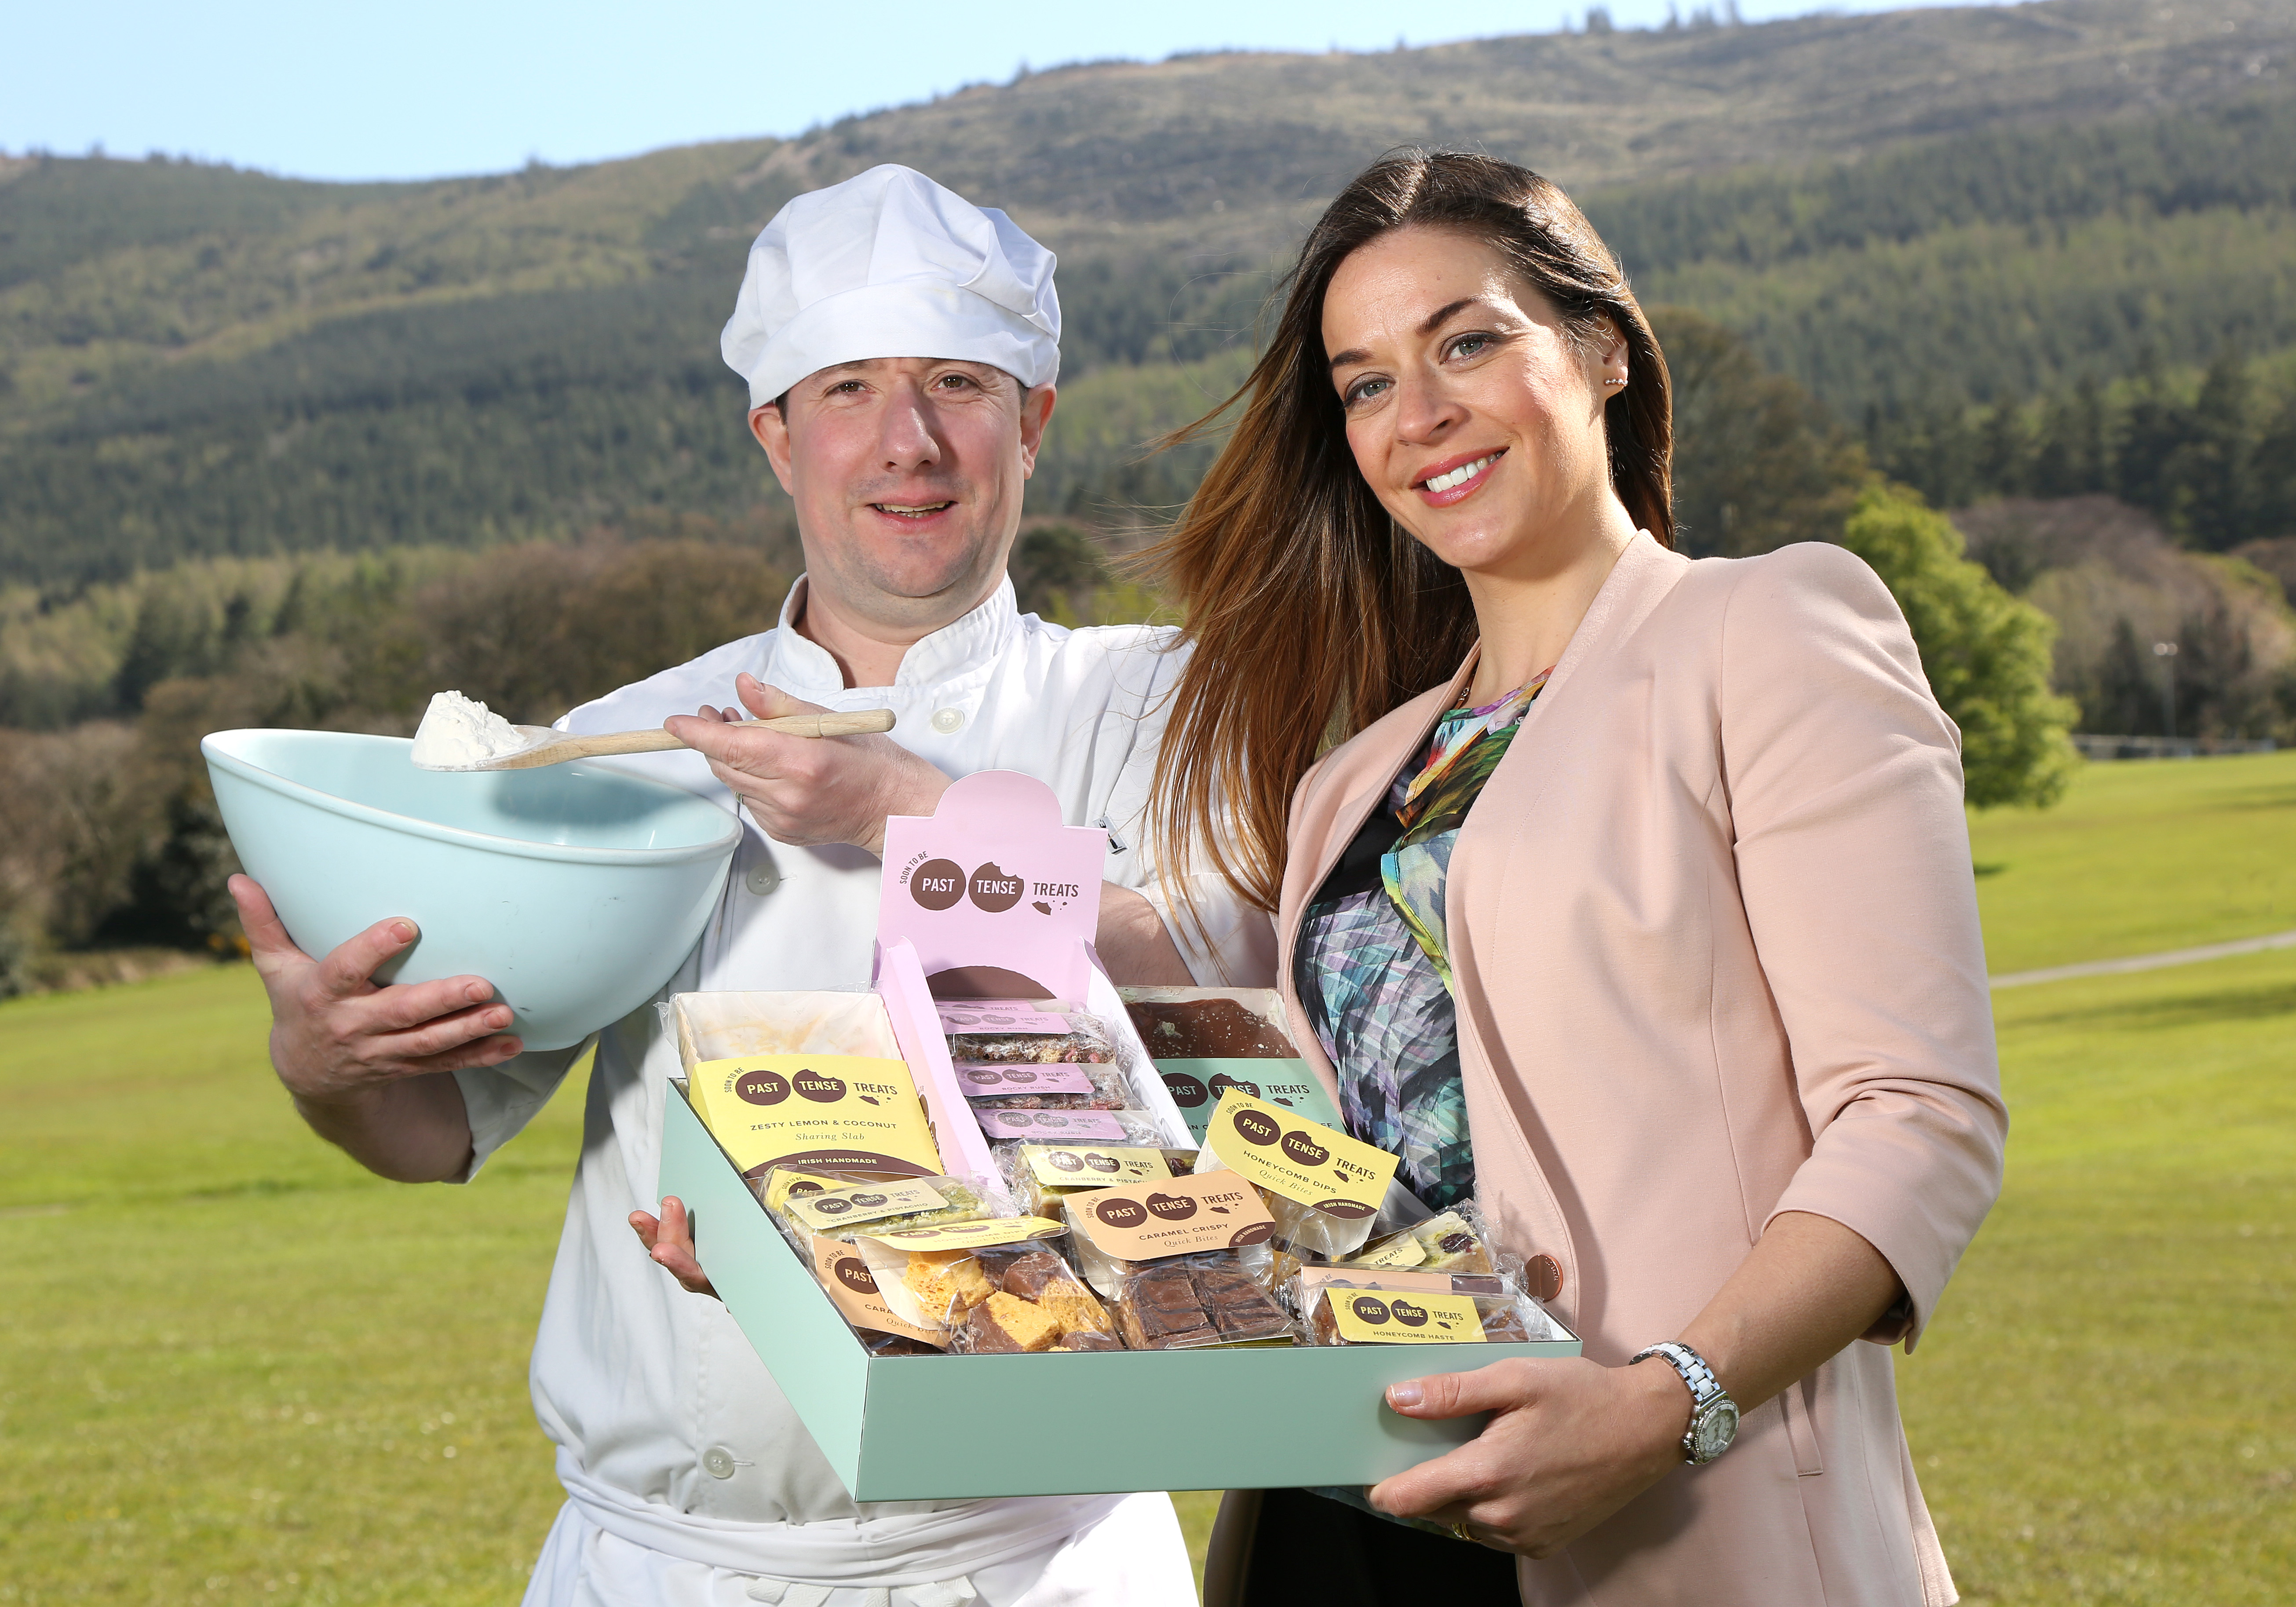 New bakery business announces first major listing